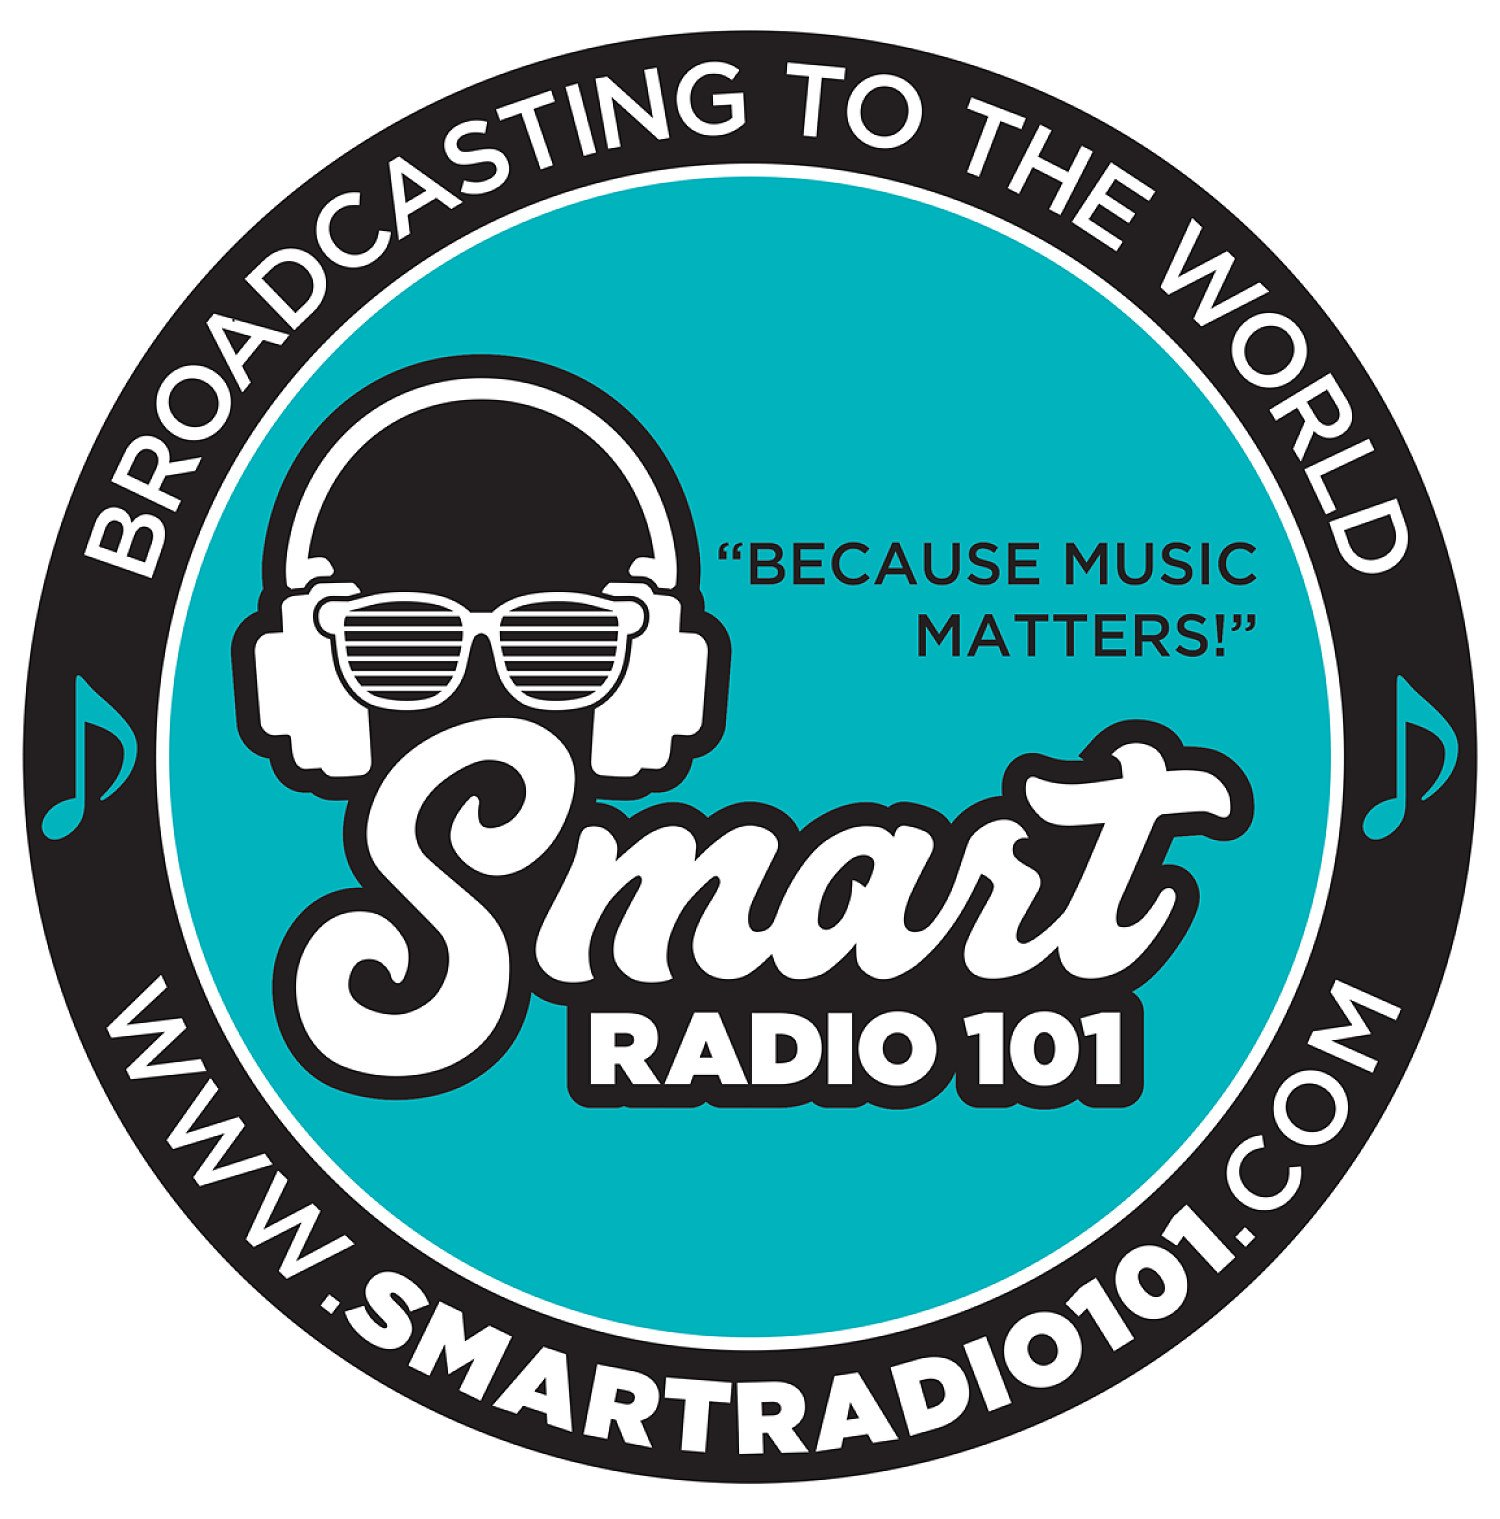 Have you ever thought about advertising on local radio?